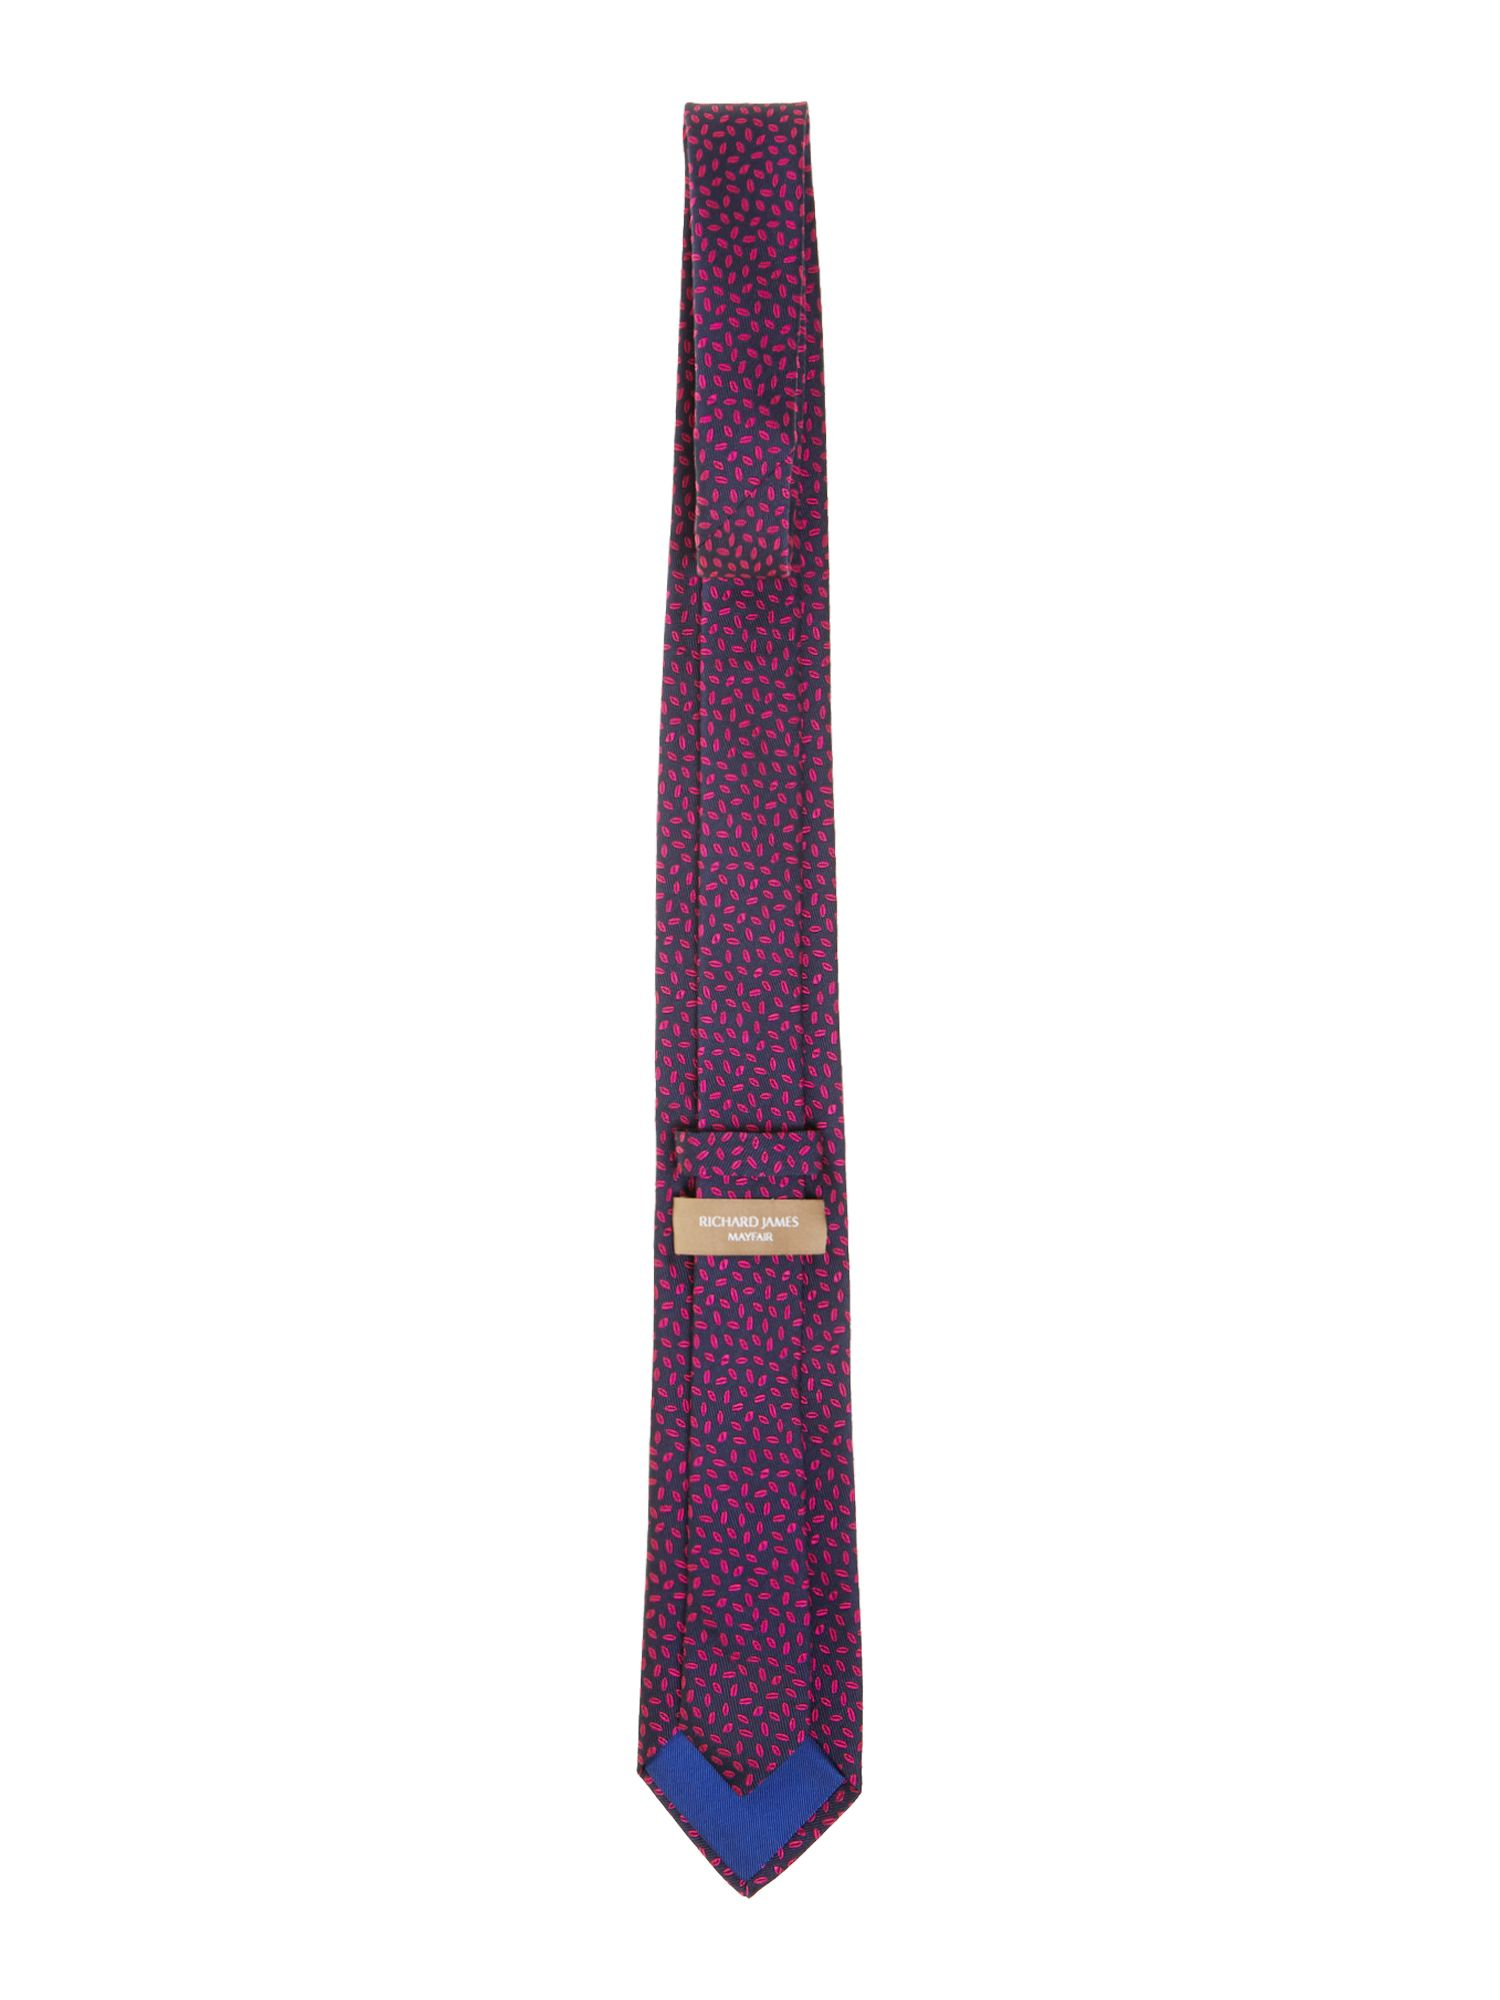 Senna leaves silk tie